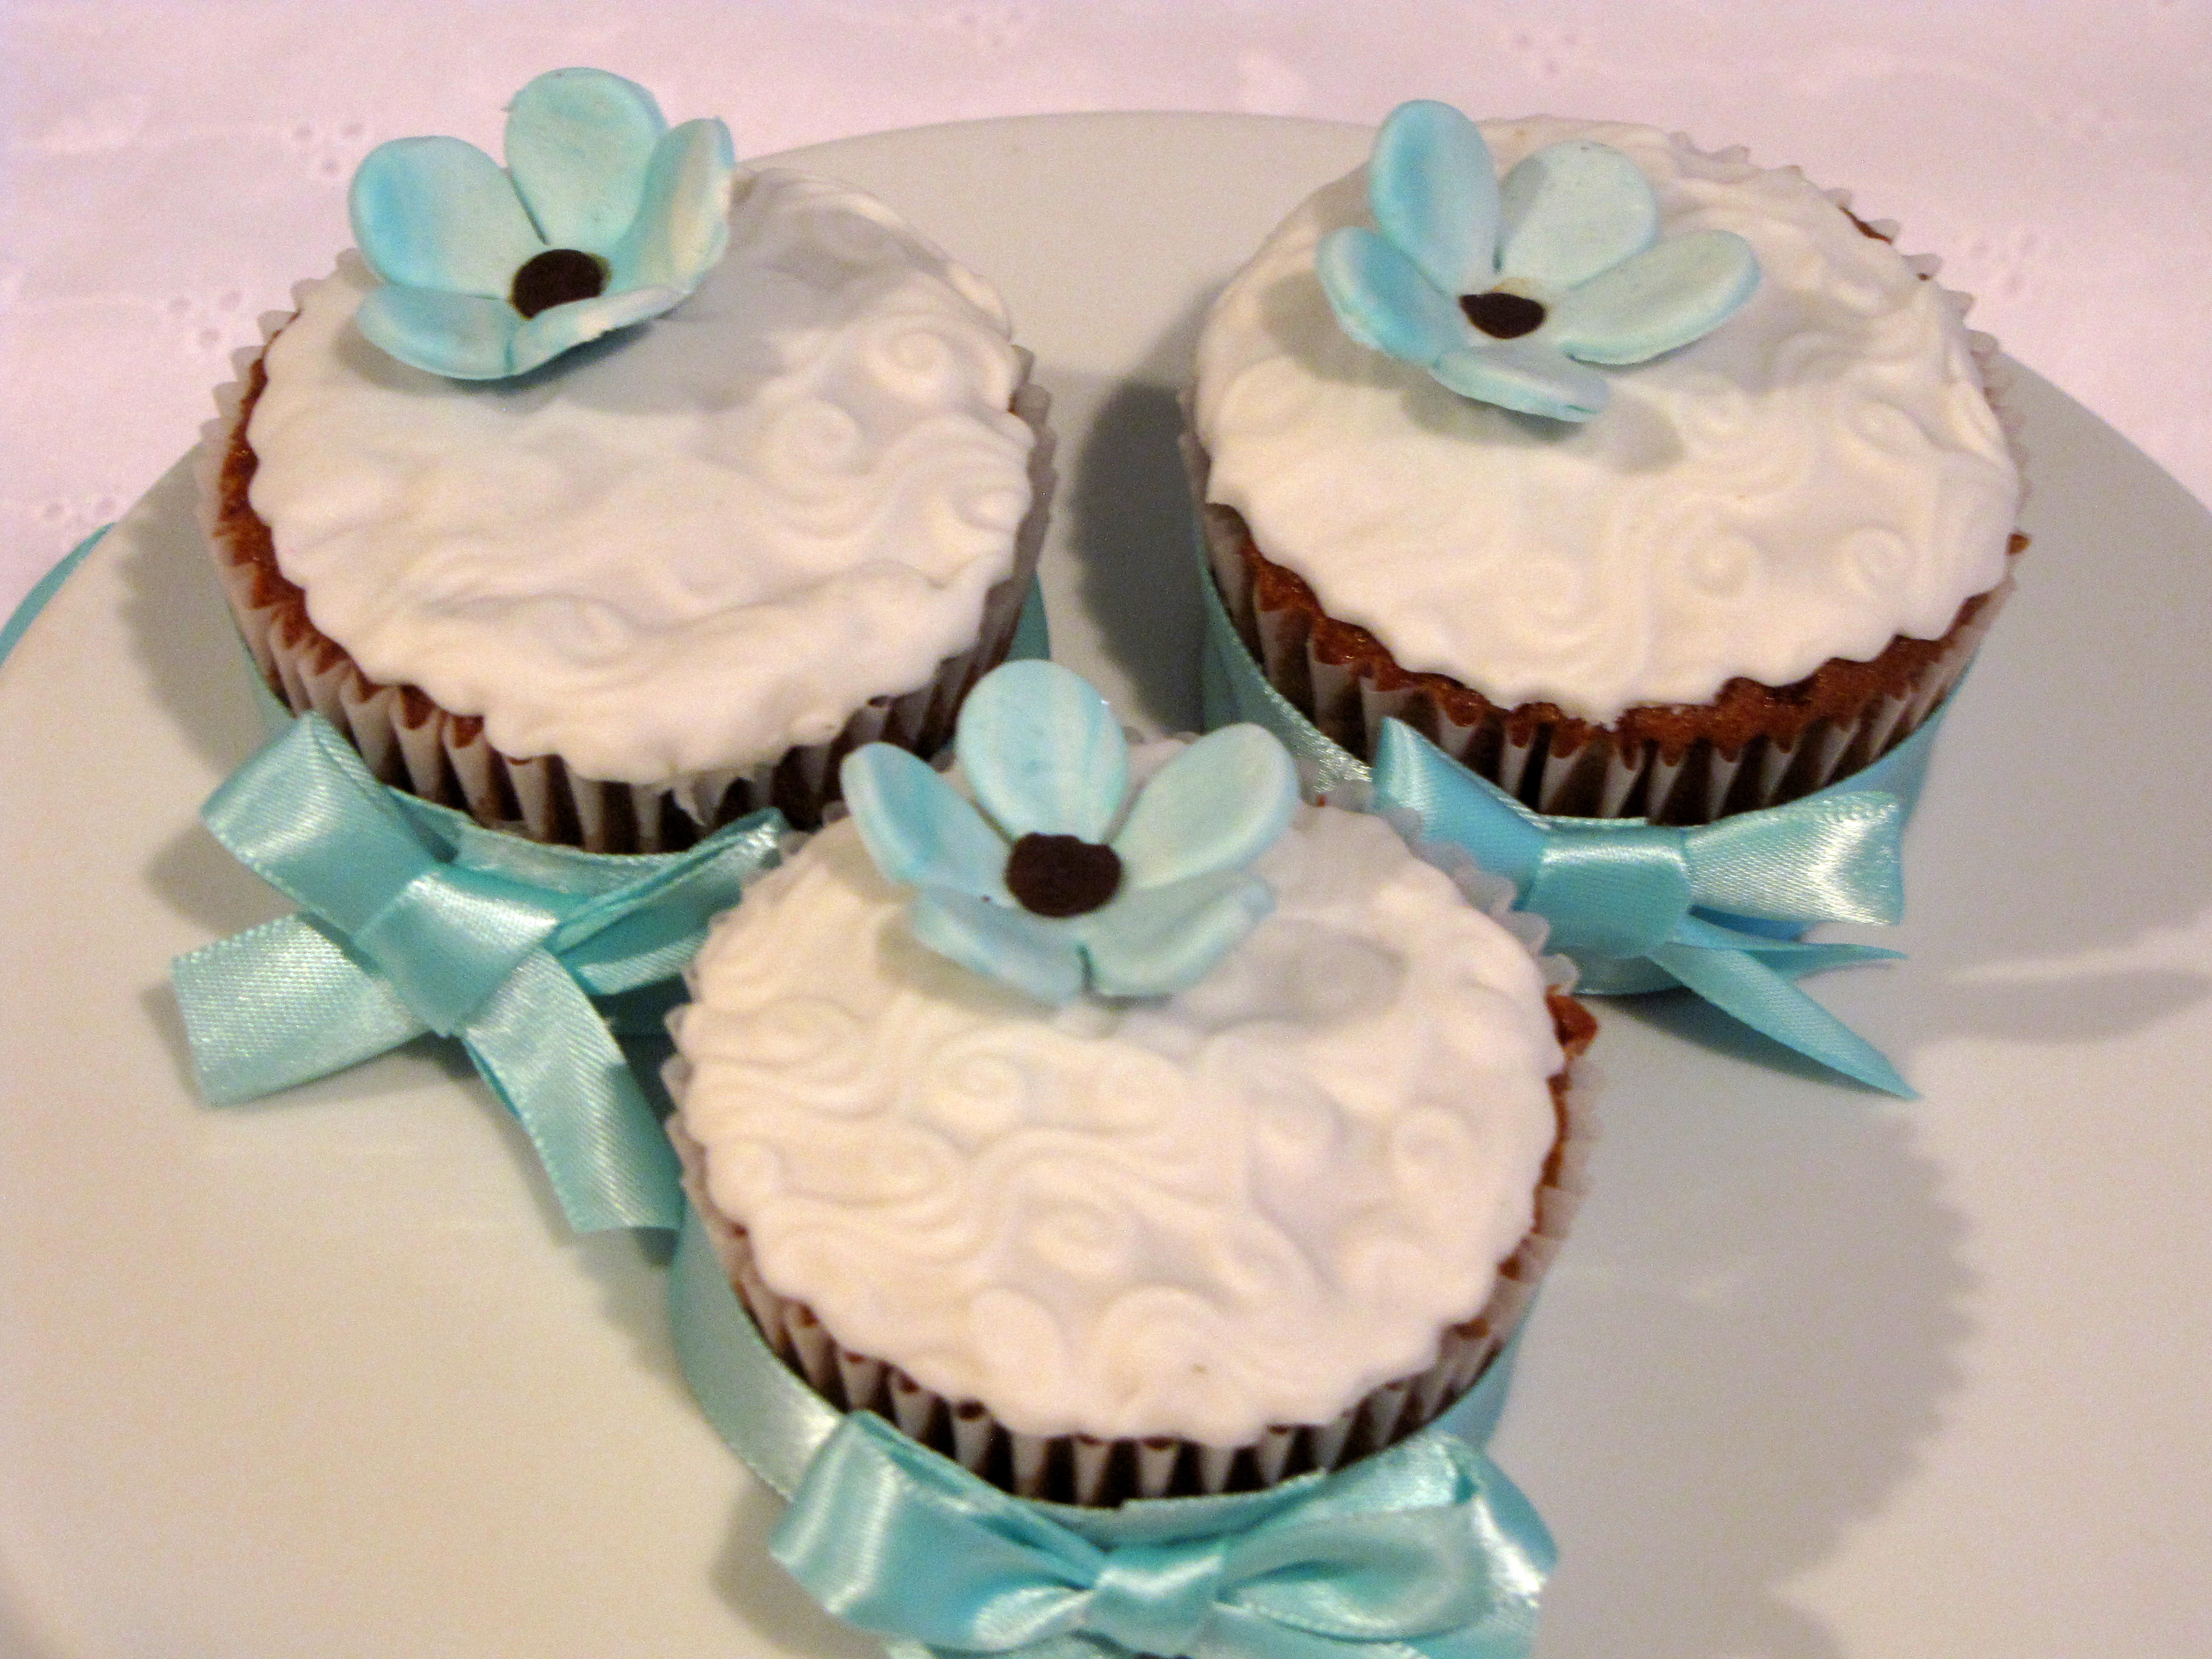 Here are some fondant covered carrot cupcakes topped with a